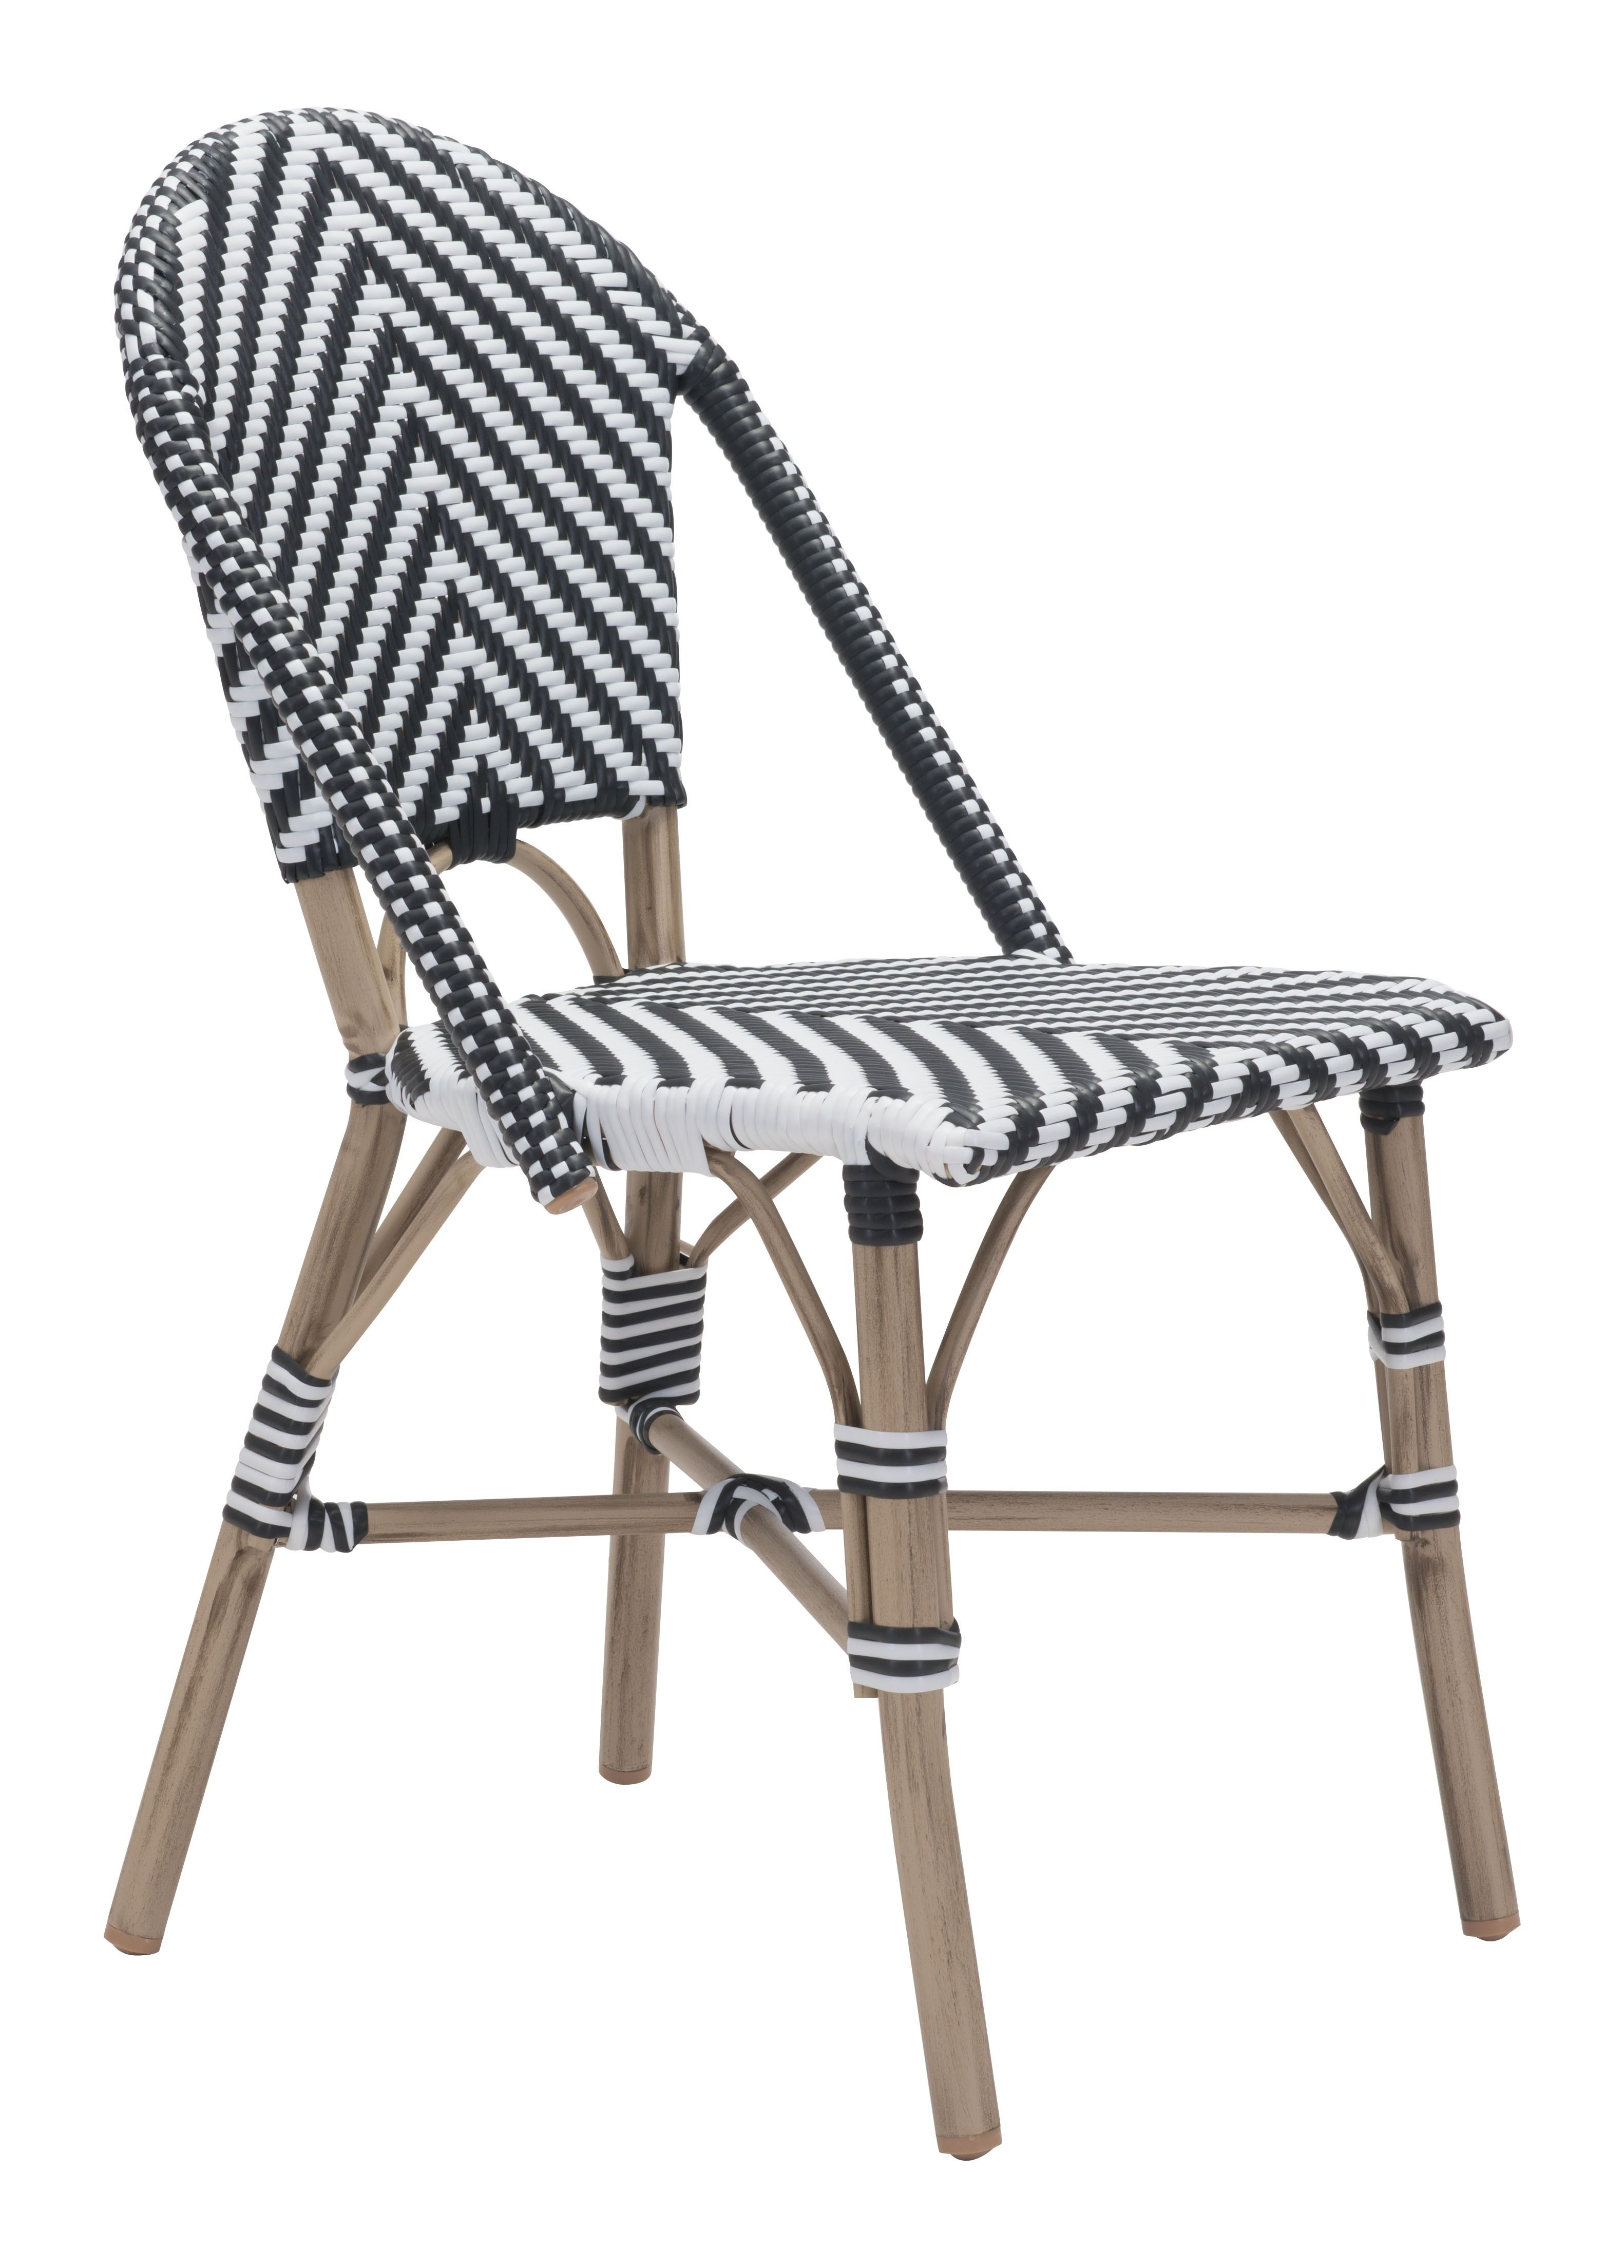 Abri Indoor/Outdoor Dining Chair, Black and White (Set of 2)   Pinterest